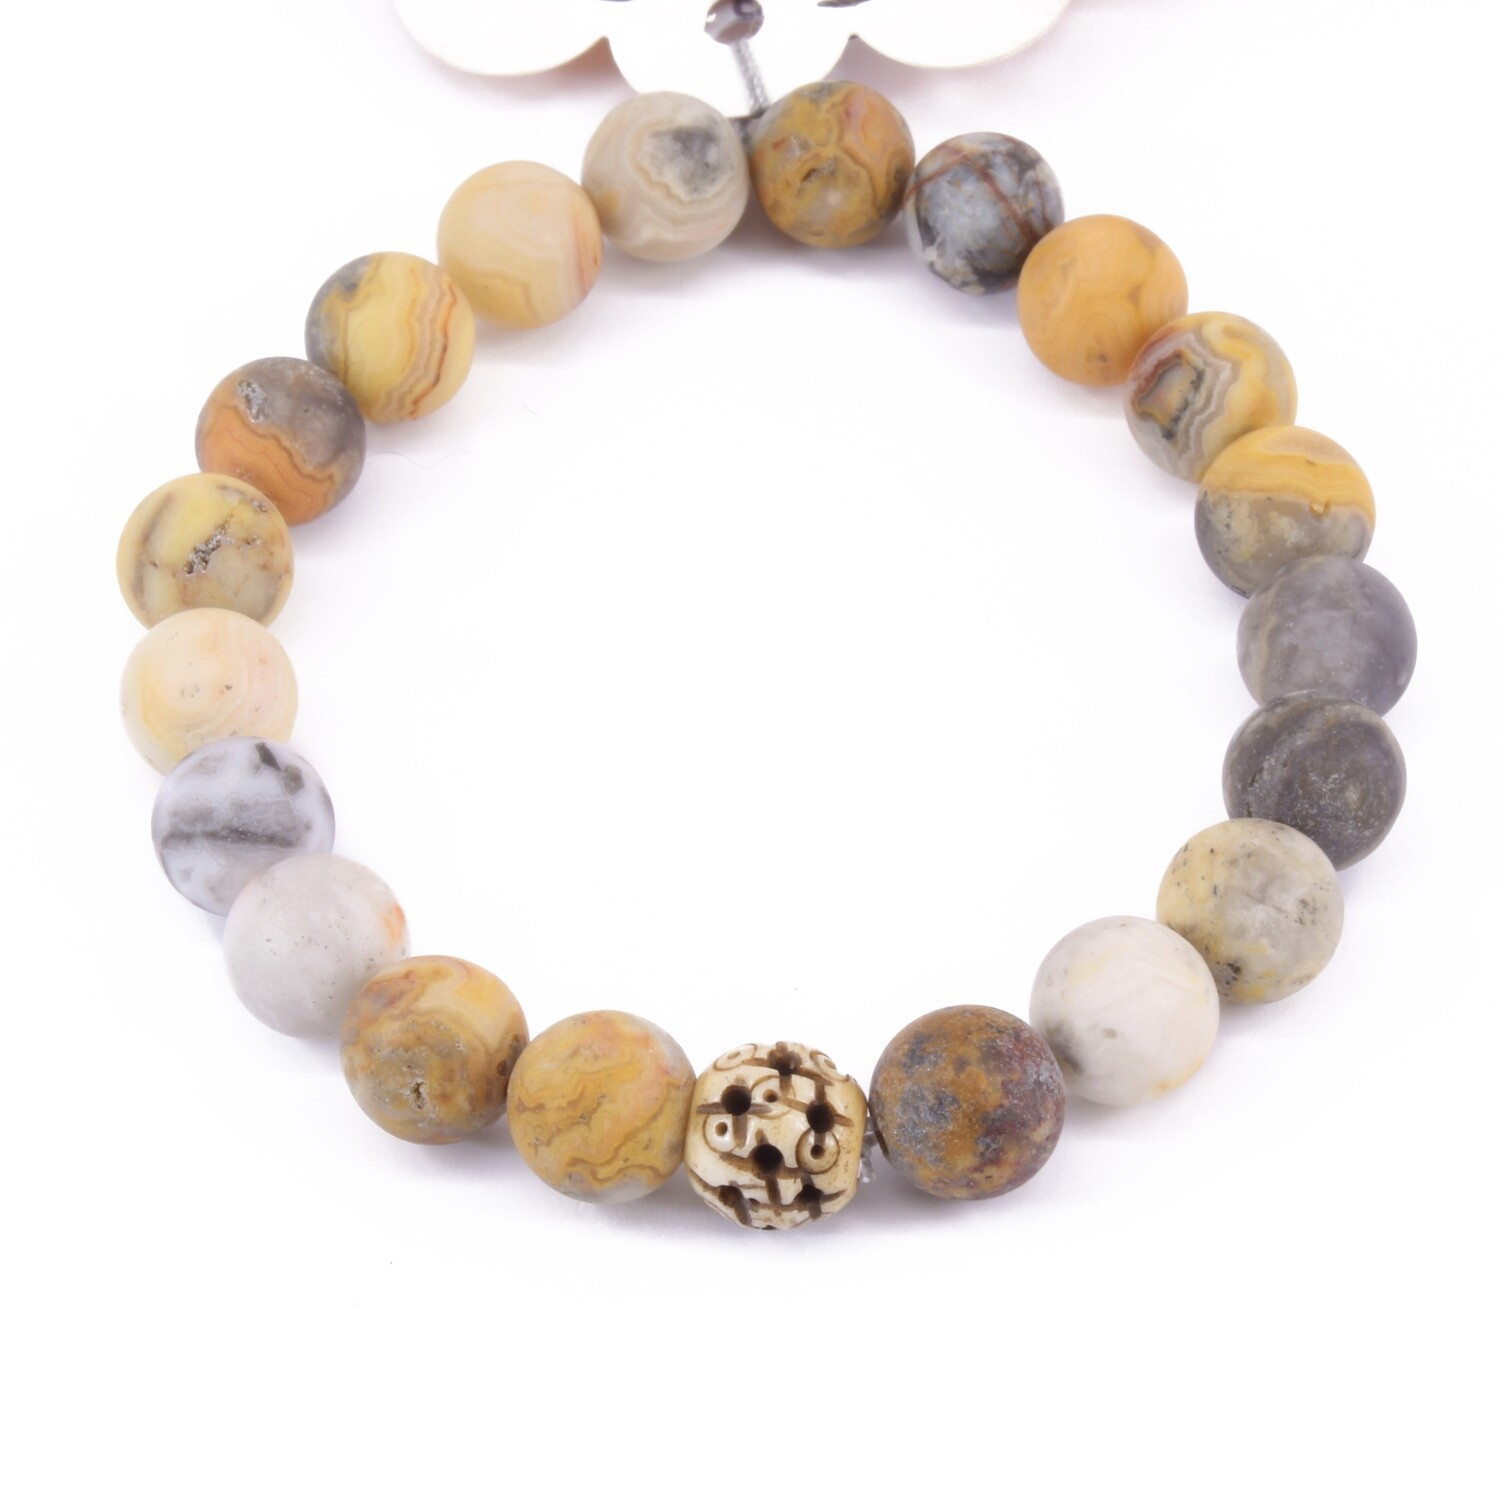 Power Bead Bracelet - Crazy Lace Agate #PBCLA